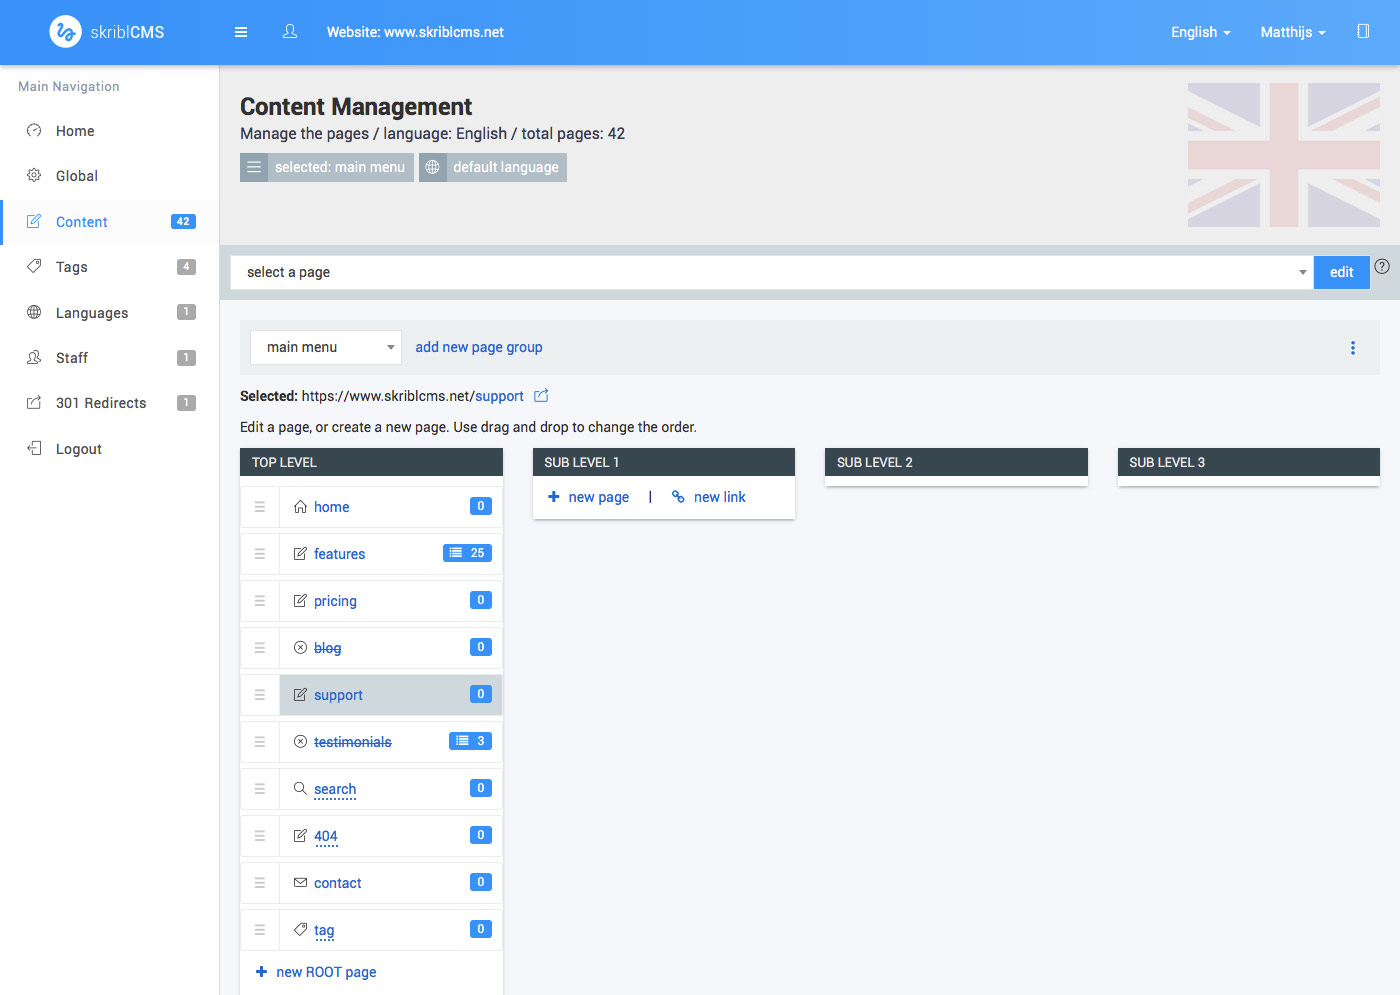 skriblCMS - content management - content presented as the main menu